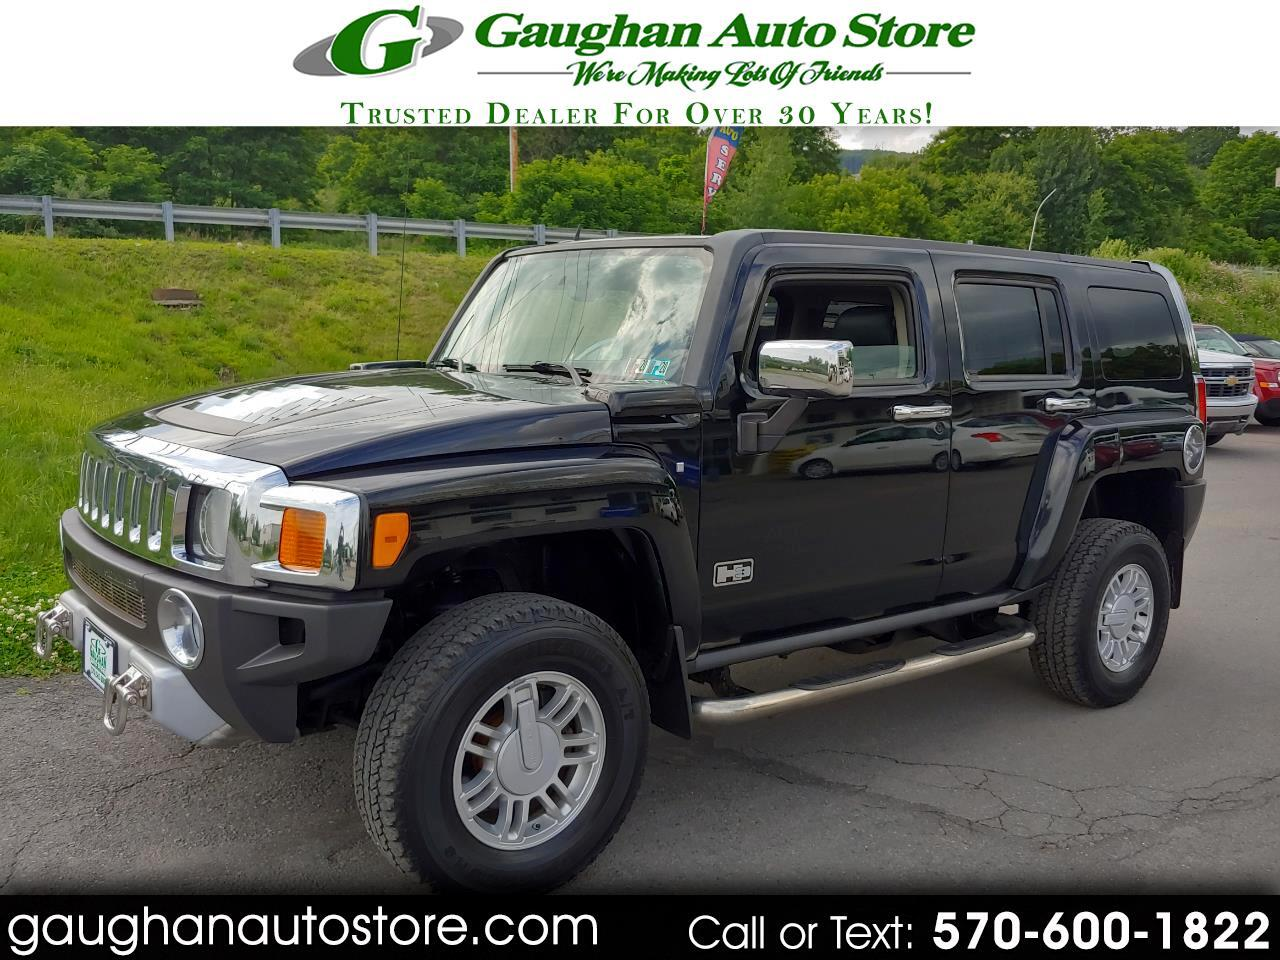 2008 HUMMER H3 4WD 4 DR. LEATHER  MOONROOF